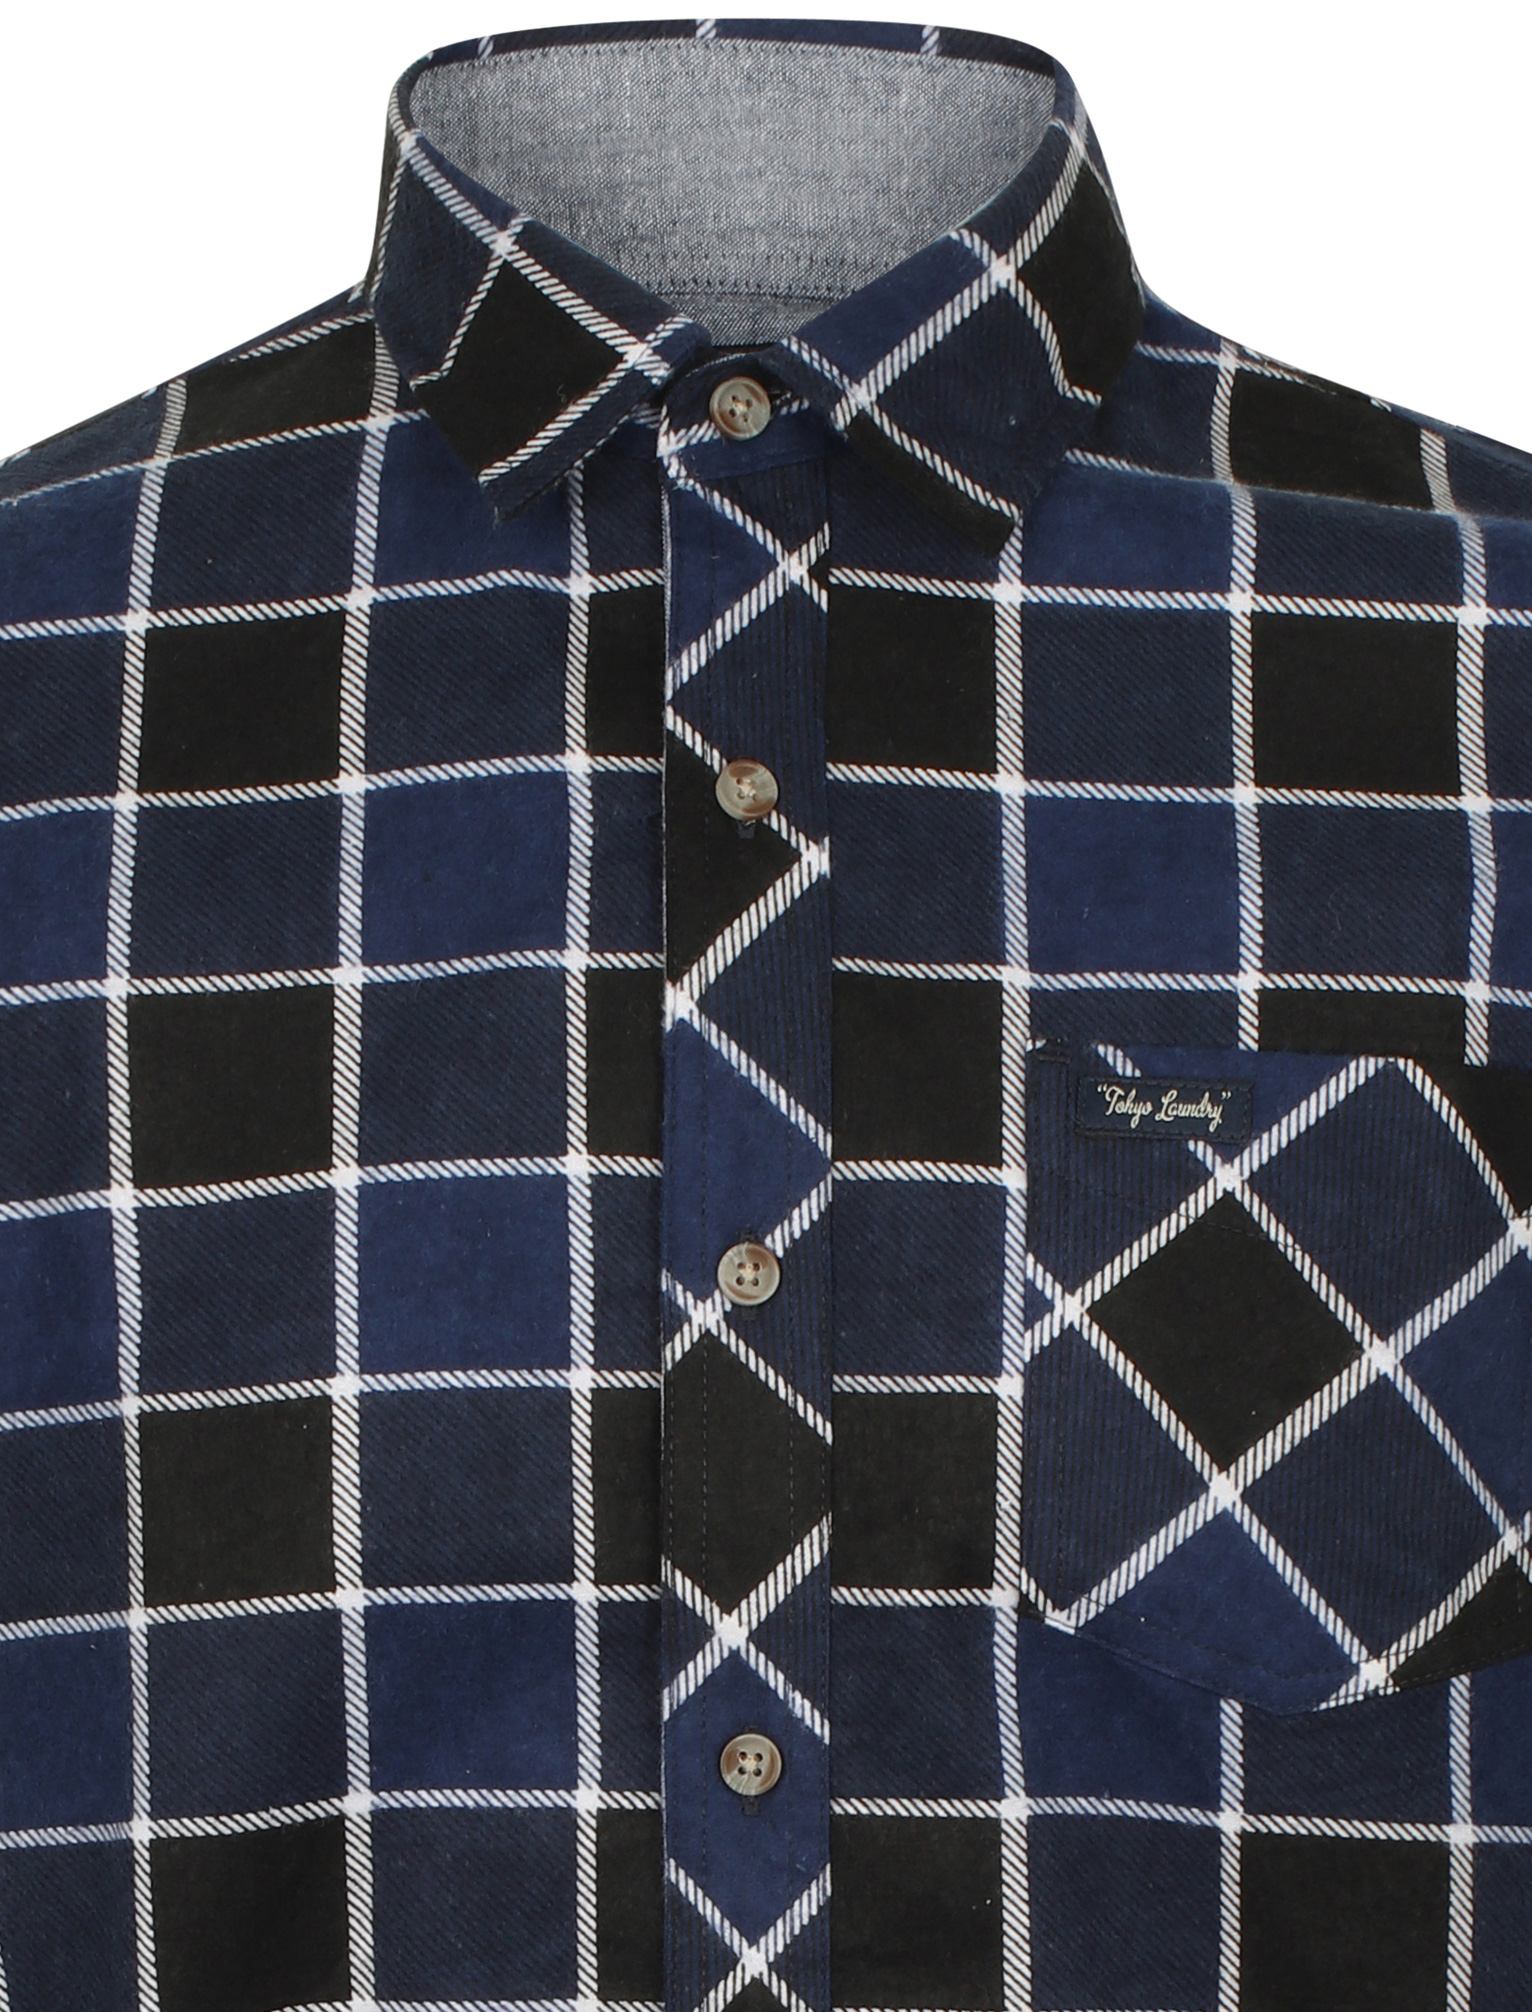 New-Mens-Tokyo-Laundry-Cotton-Long-Sleeve-Checked-Flannel-Shirt-Size-S-XL thumbnail 22